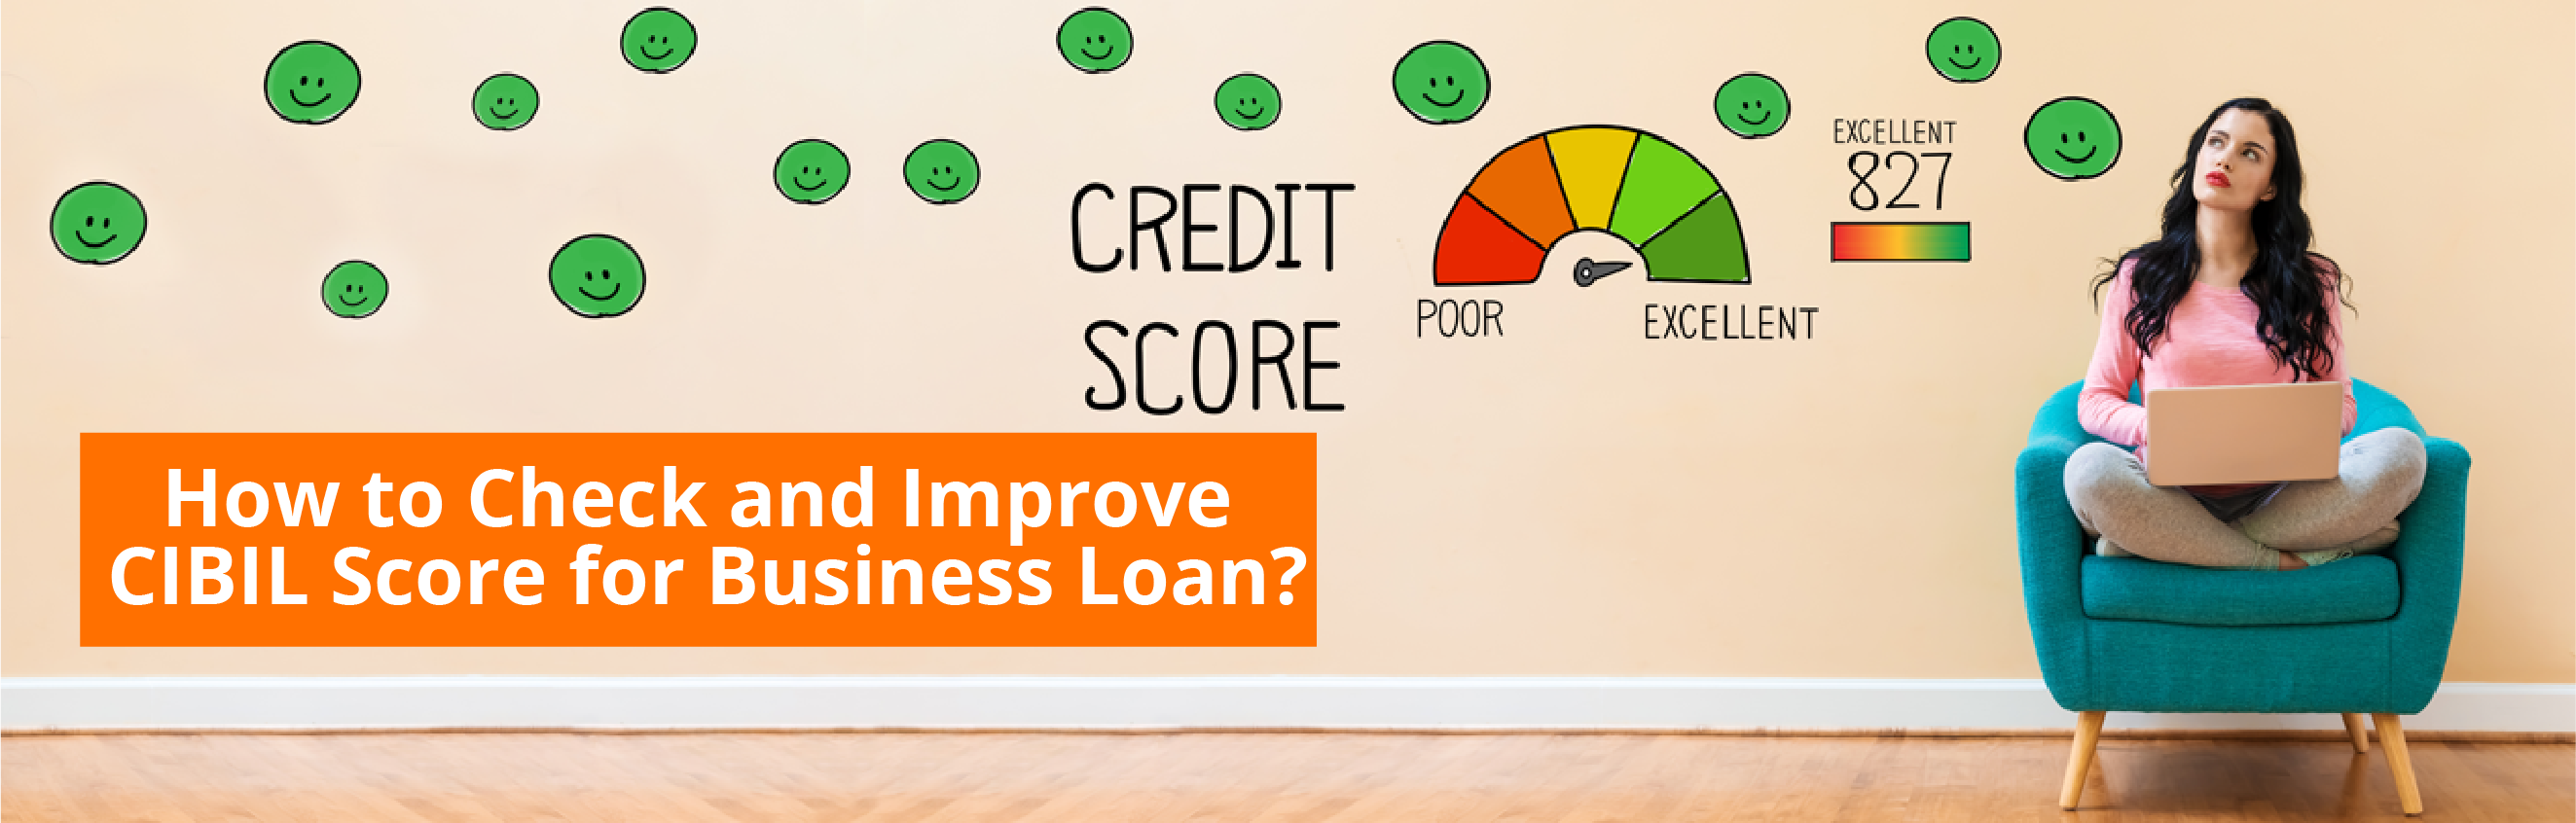 How to Check and Improve CIBIL Credit Score for Business Loan?